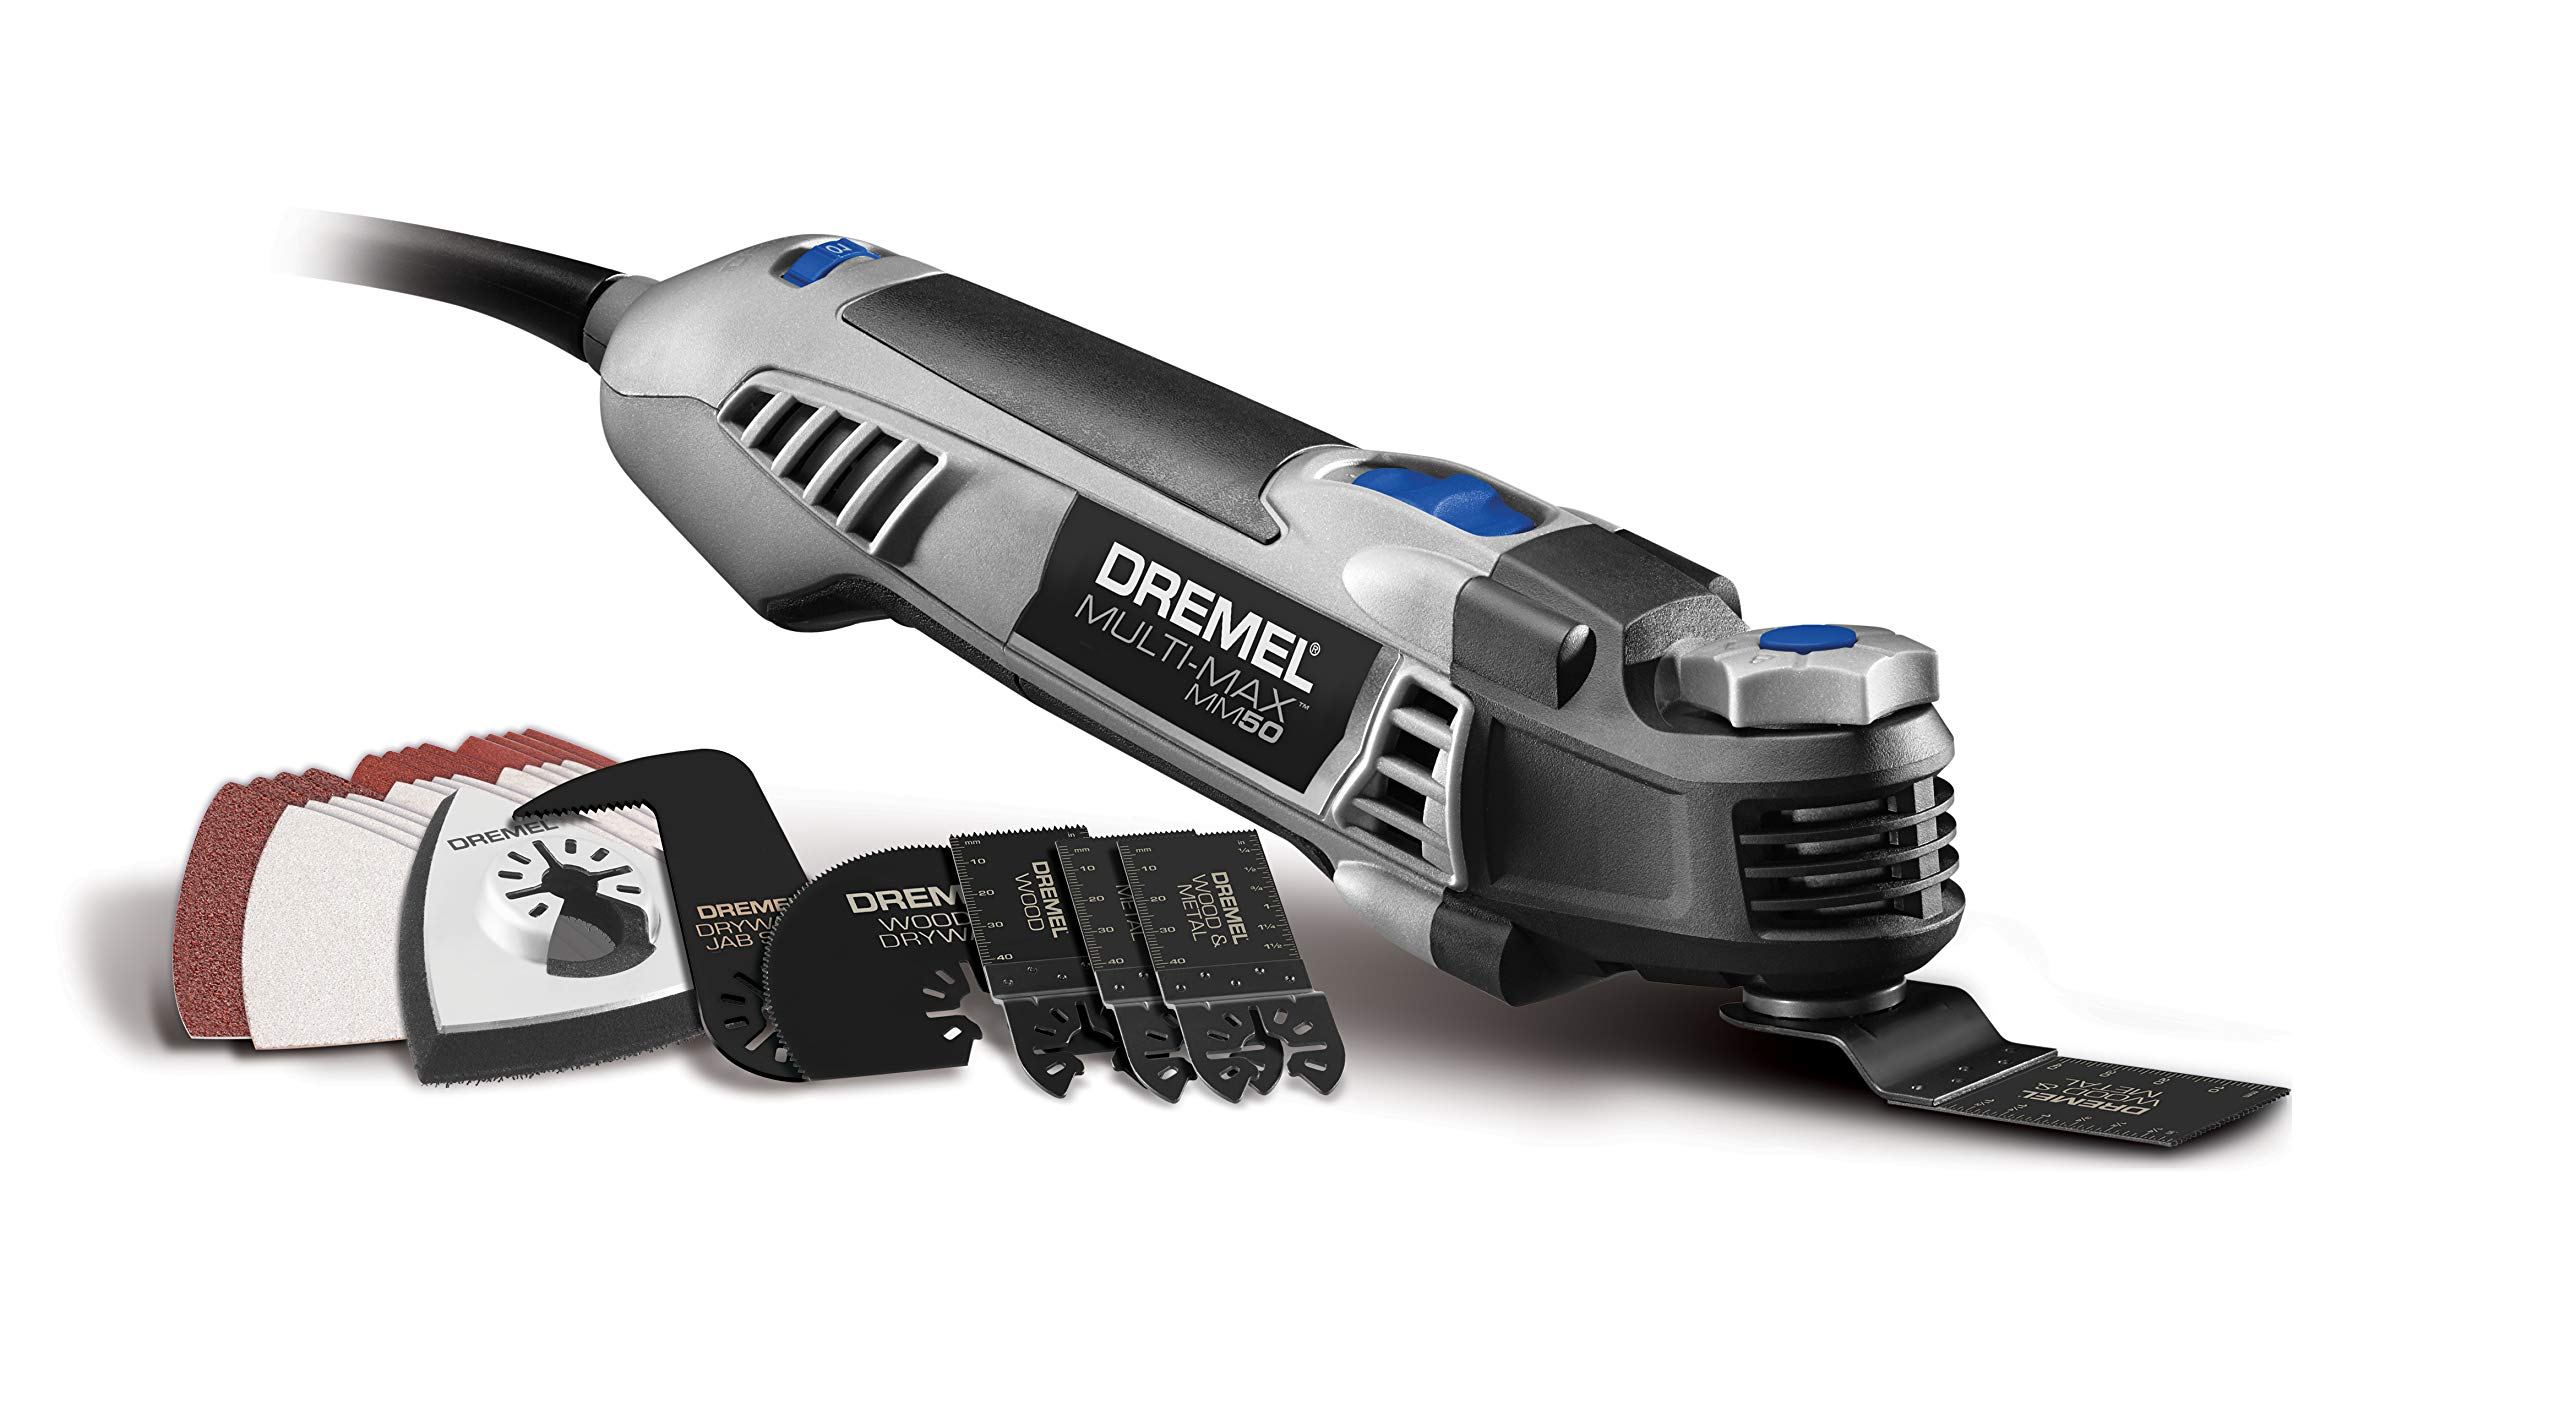 MM50-01 Multi-Max 5.0-Amp Oscillating Tool Kit with Tool-LESS Accessory Chance Interface & 30 Accessories